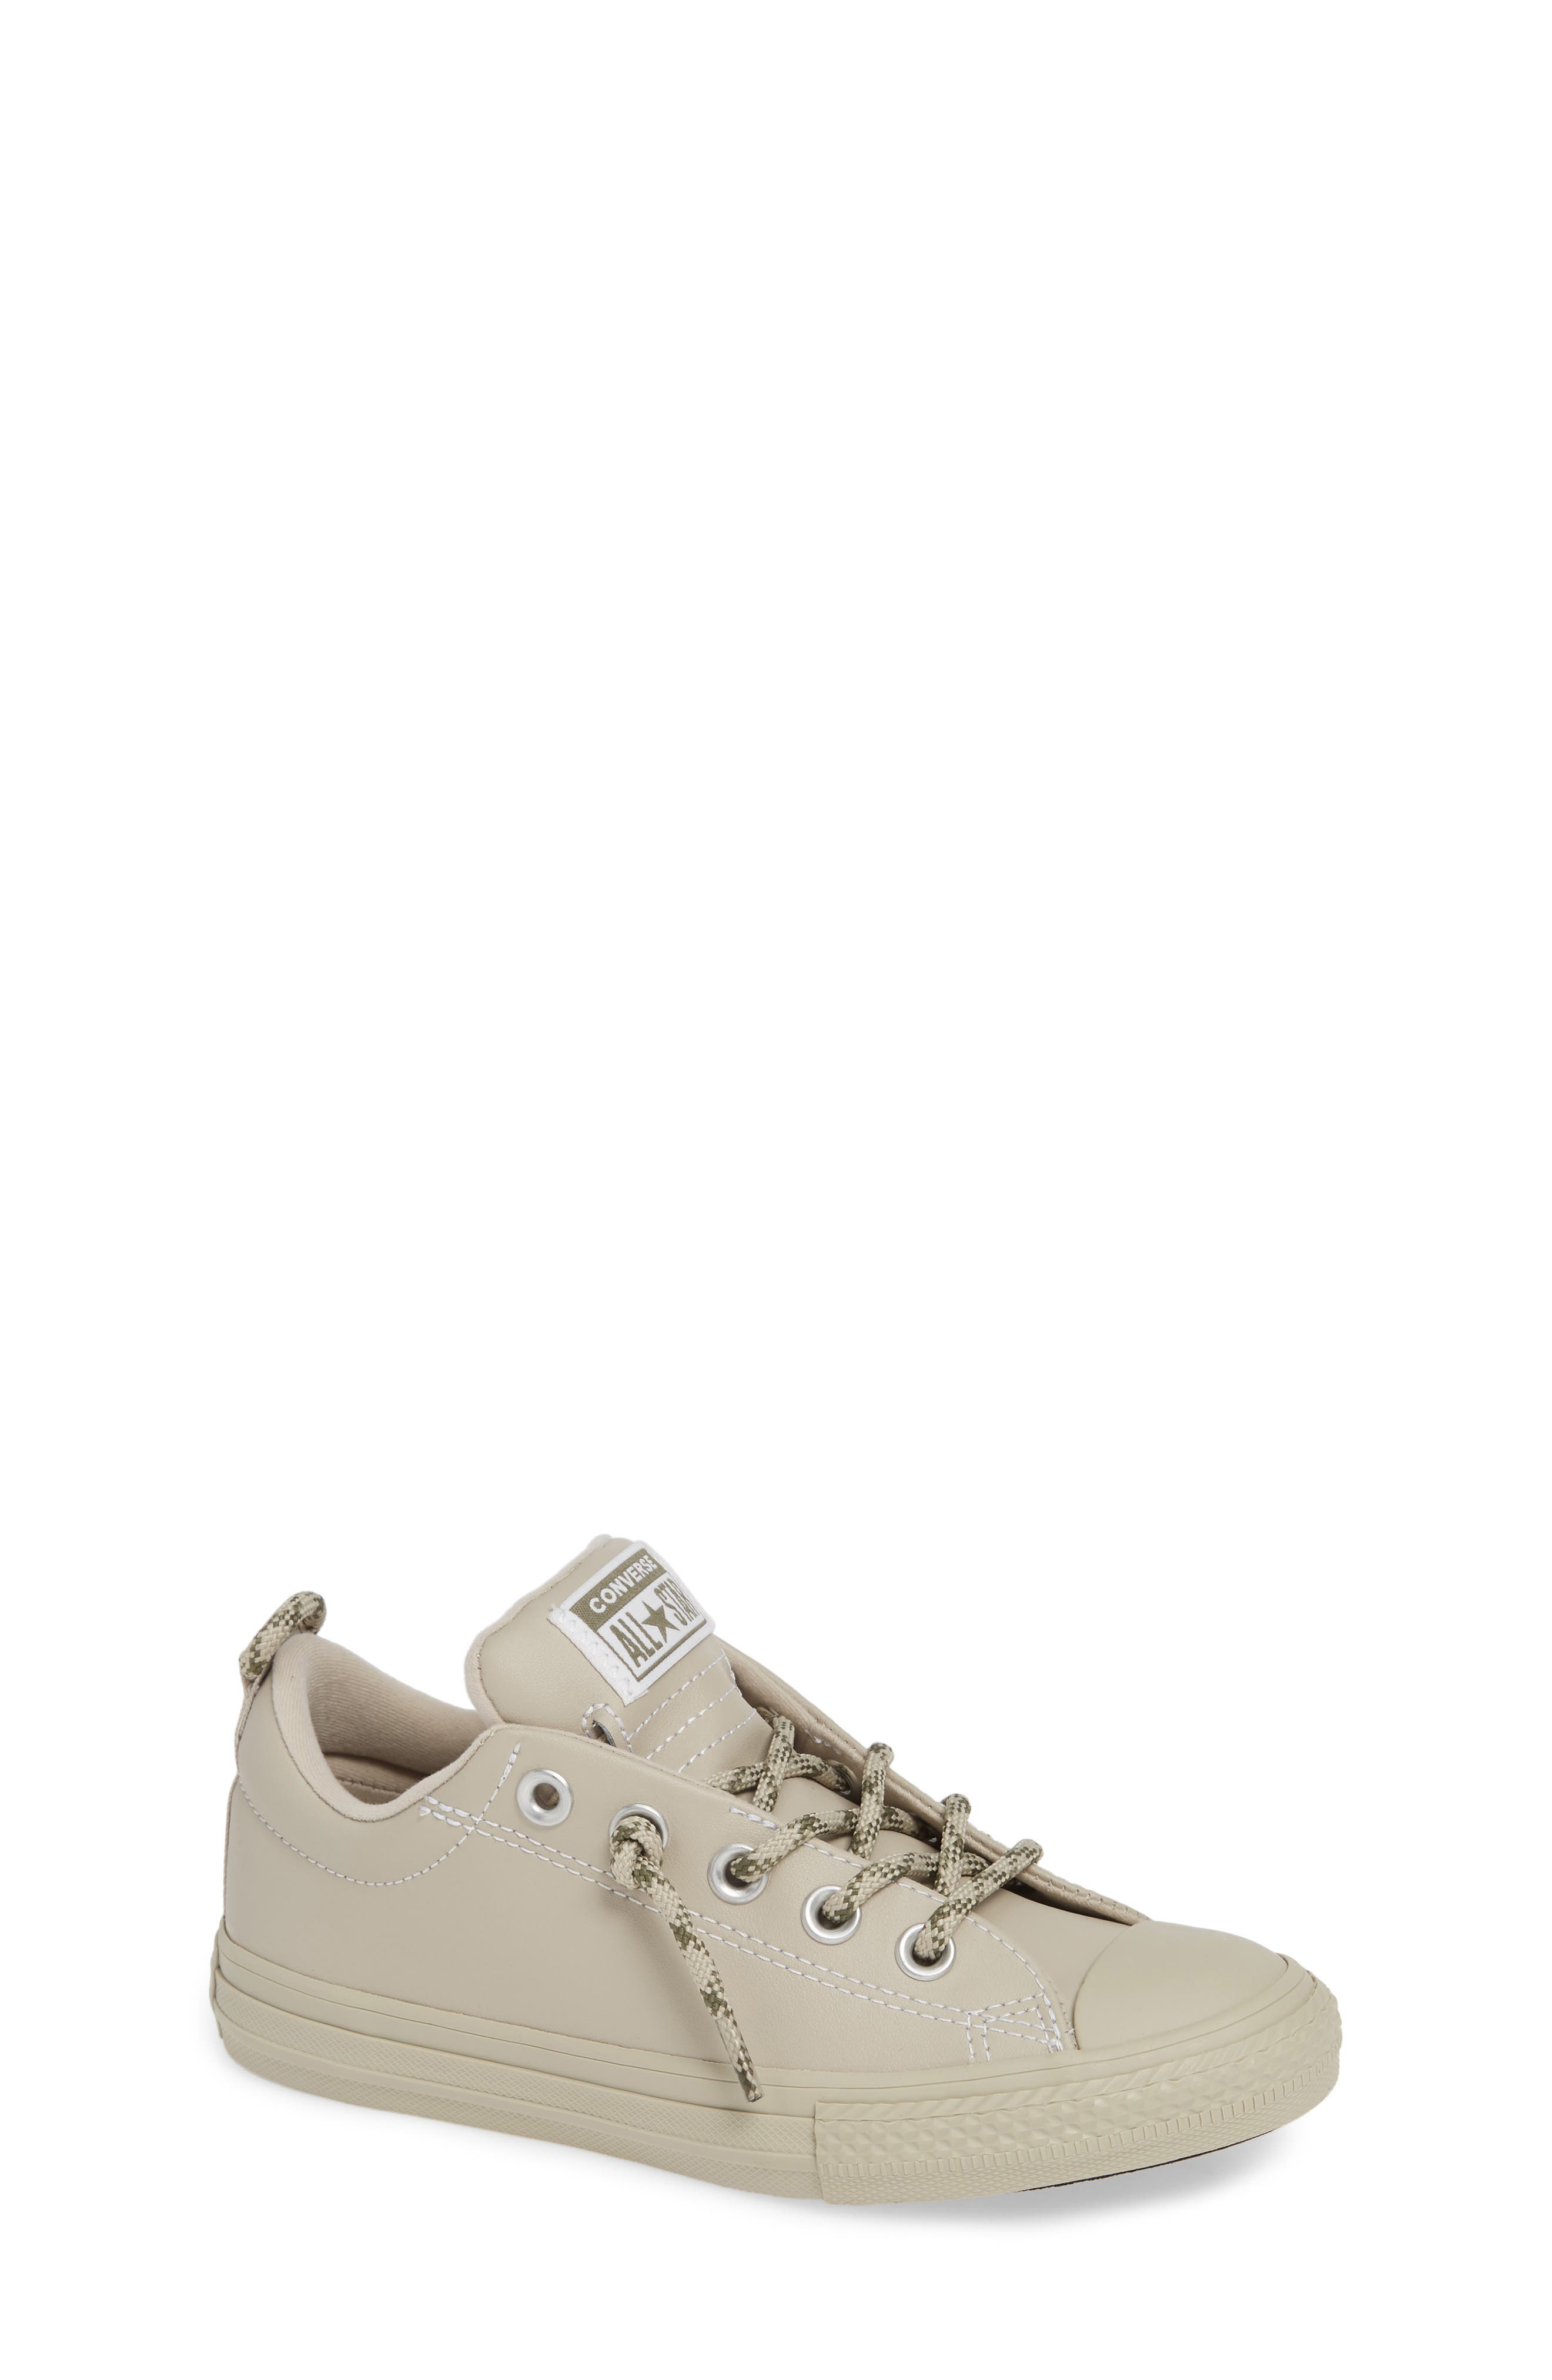 CONVERSE Chuck Taylor<sup>®</sup> All Star<sup>®</sup> Street Hiker Sneaker, Main, color, PAPYRUS